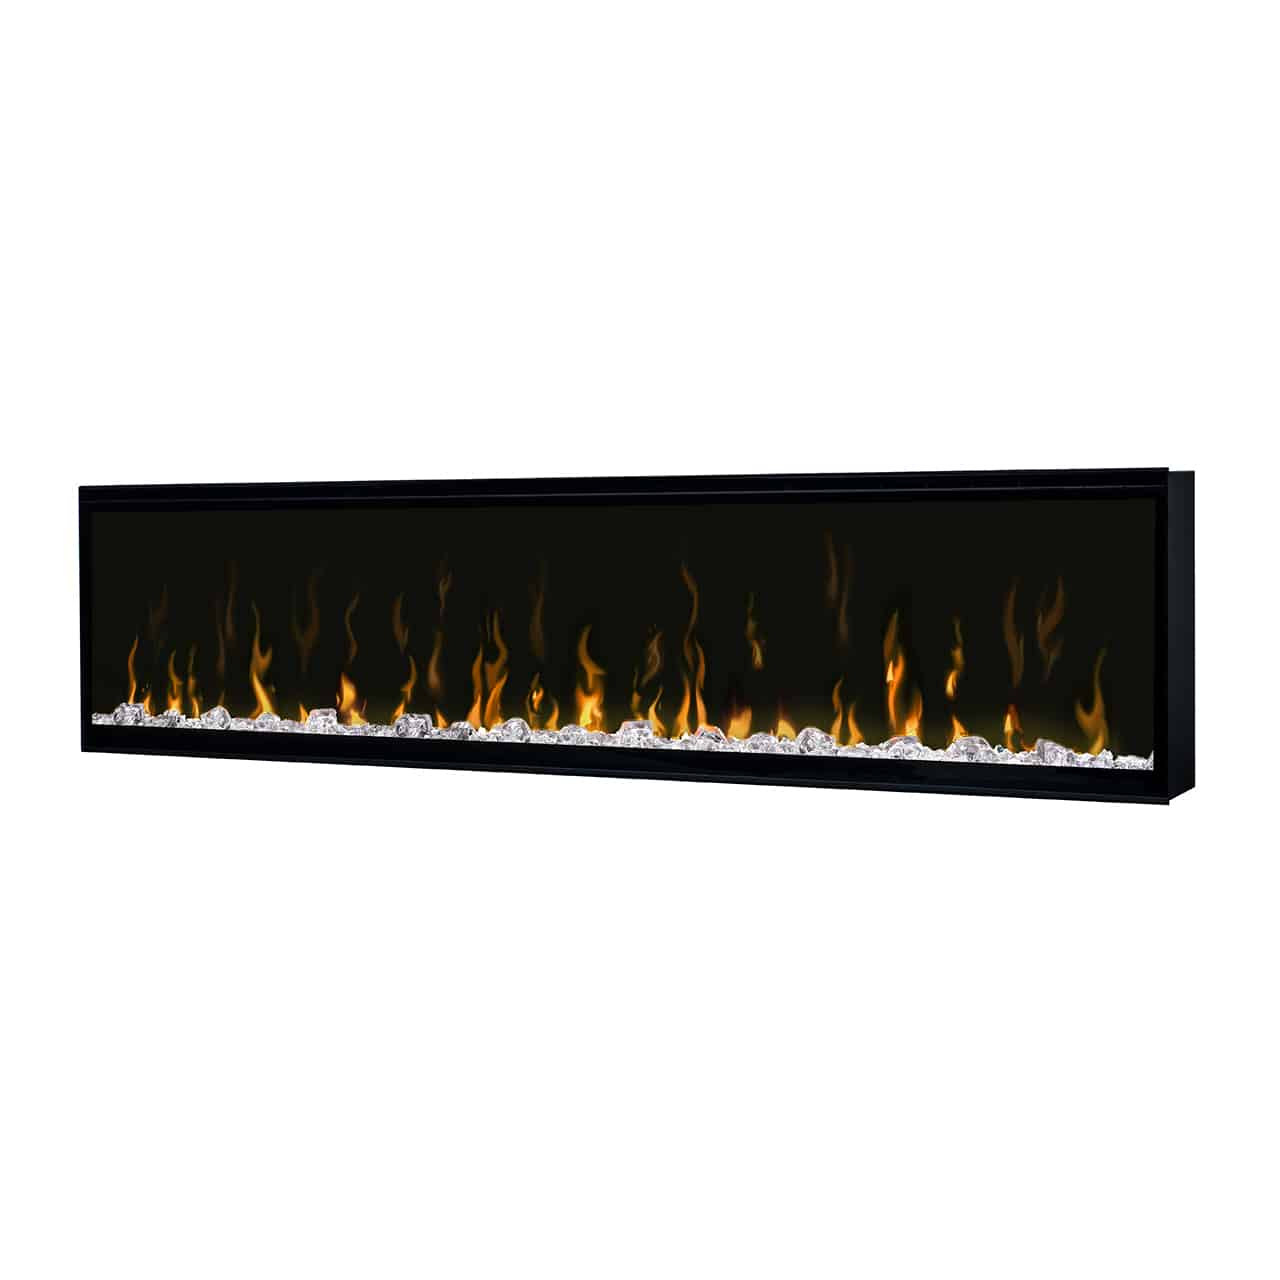 Dimplex Ignite Xlf60 60 Quot Linear Electric Fireplace